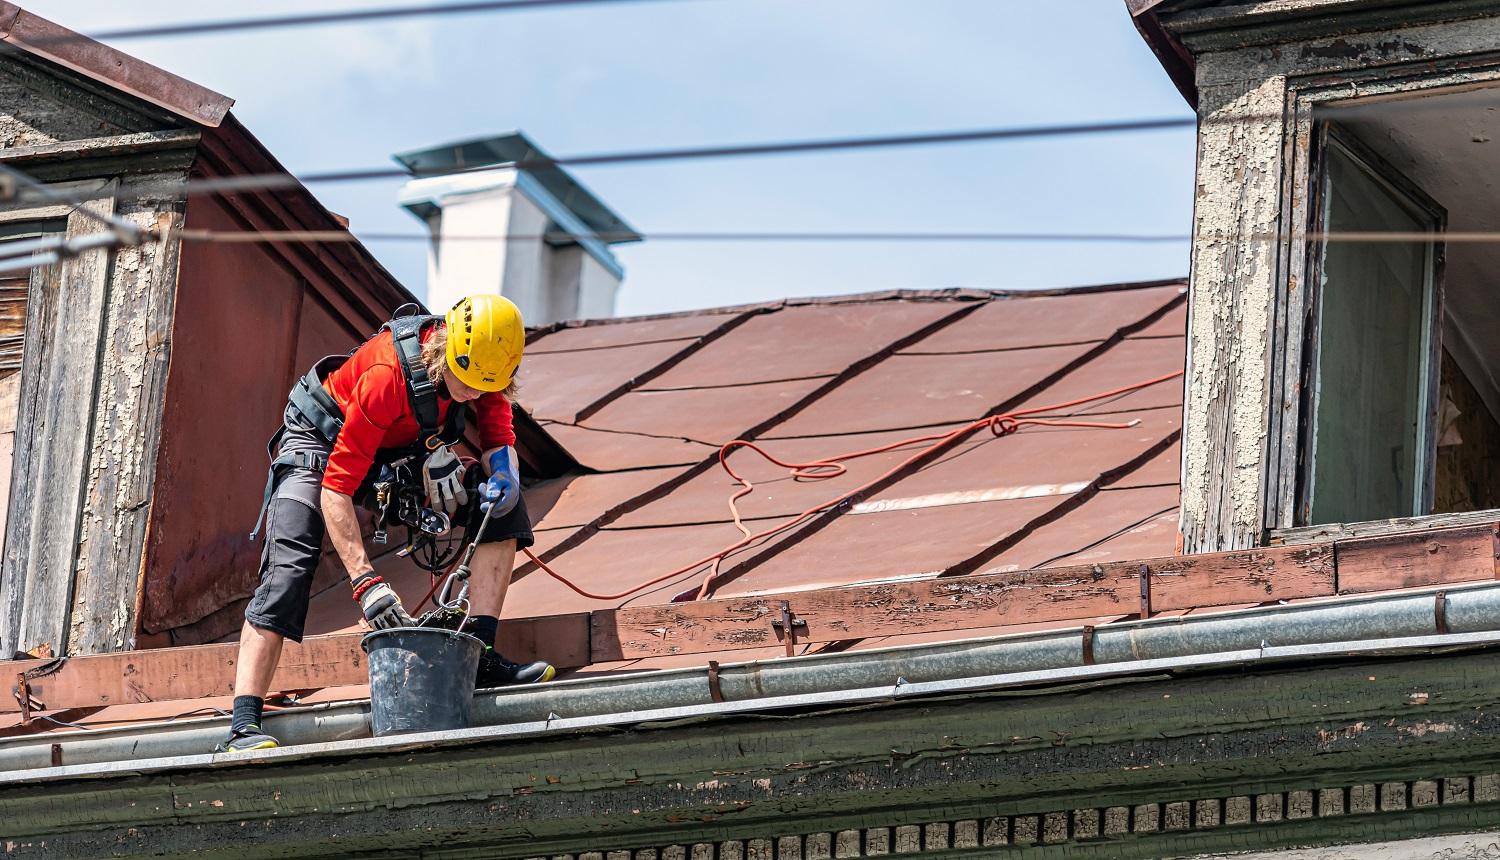 Riga, Latvia- July 3, 2020: Industrial climber removes leaves and dirt from house rooftop rain gutter